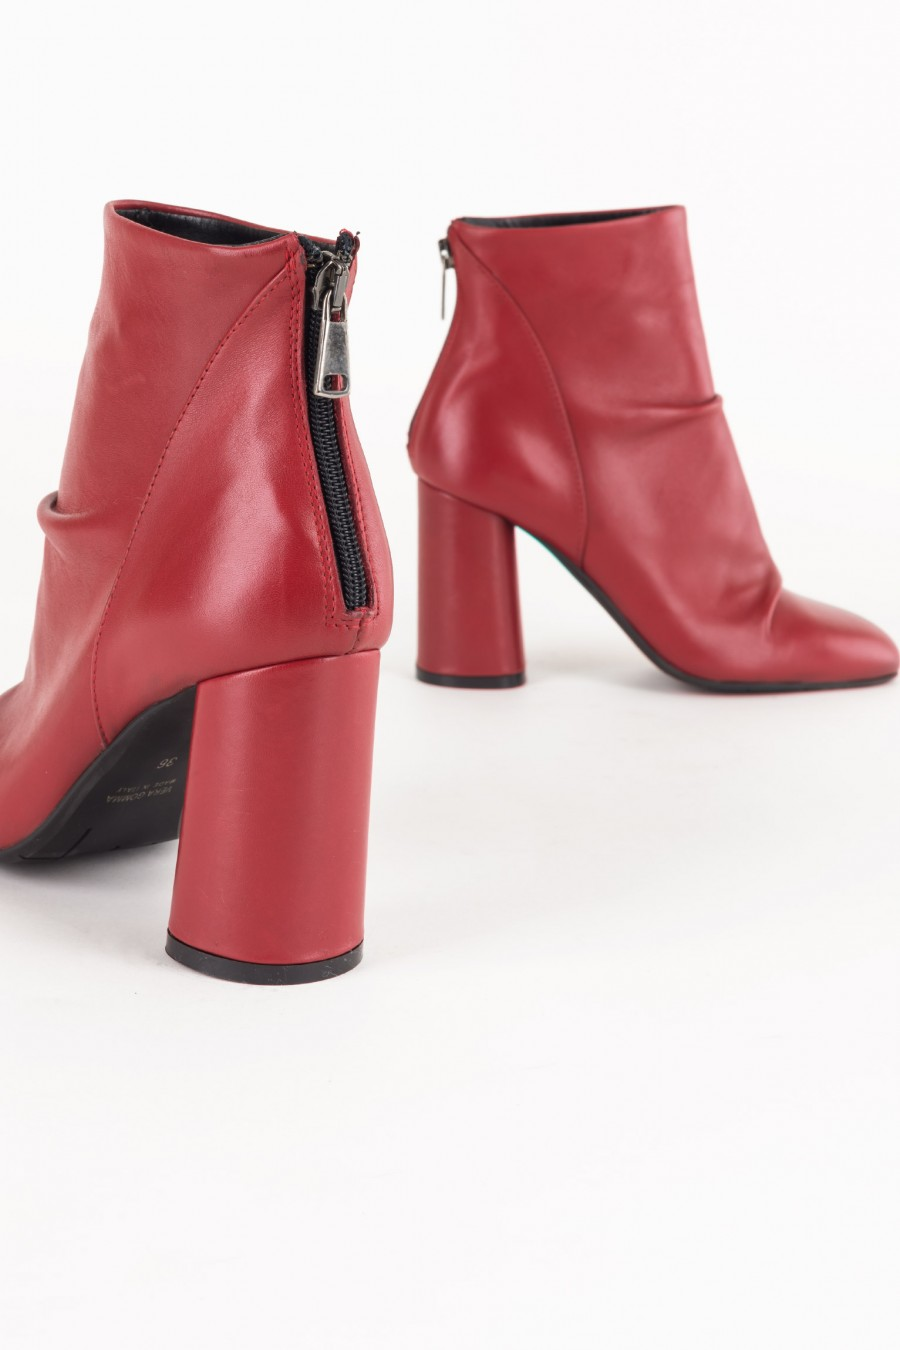 Red boots with rounded heels